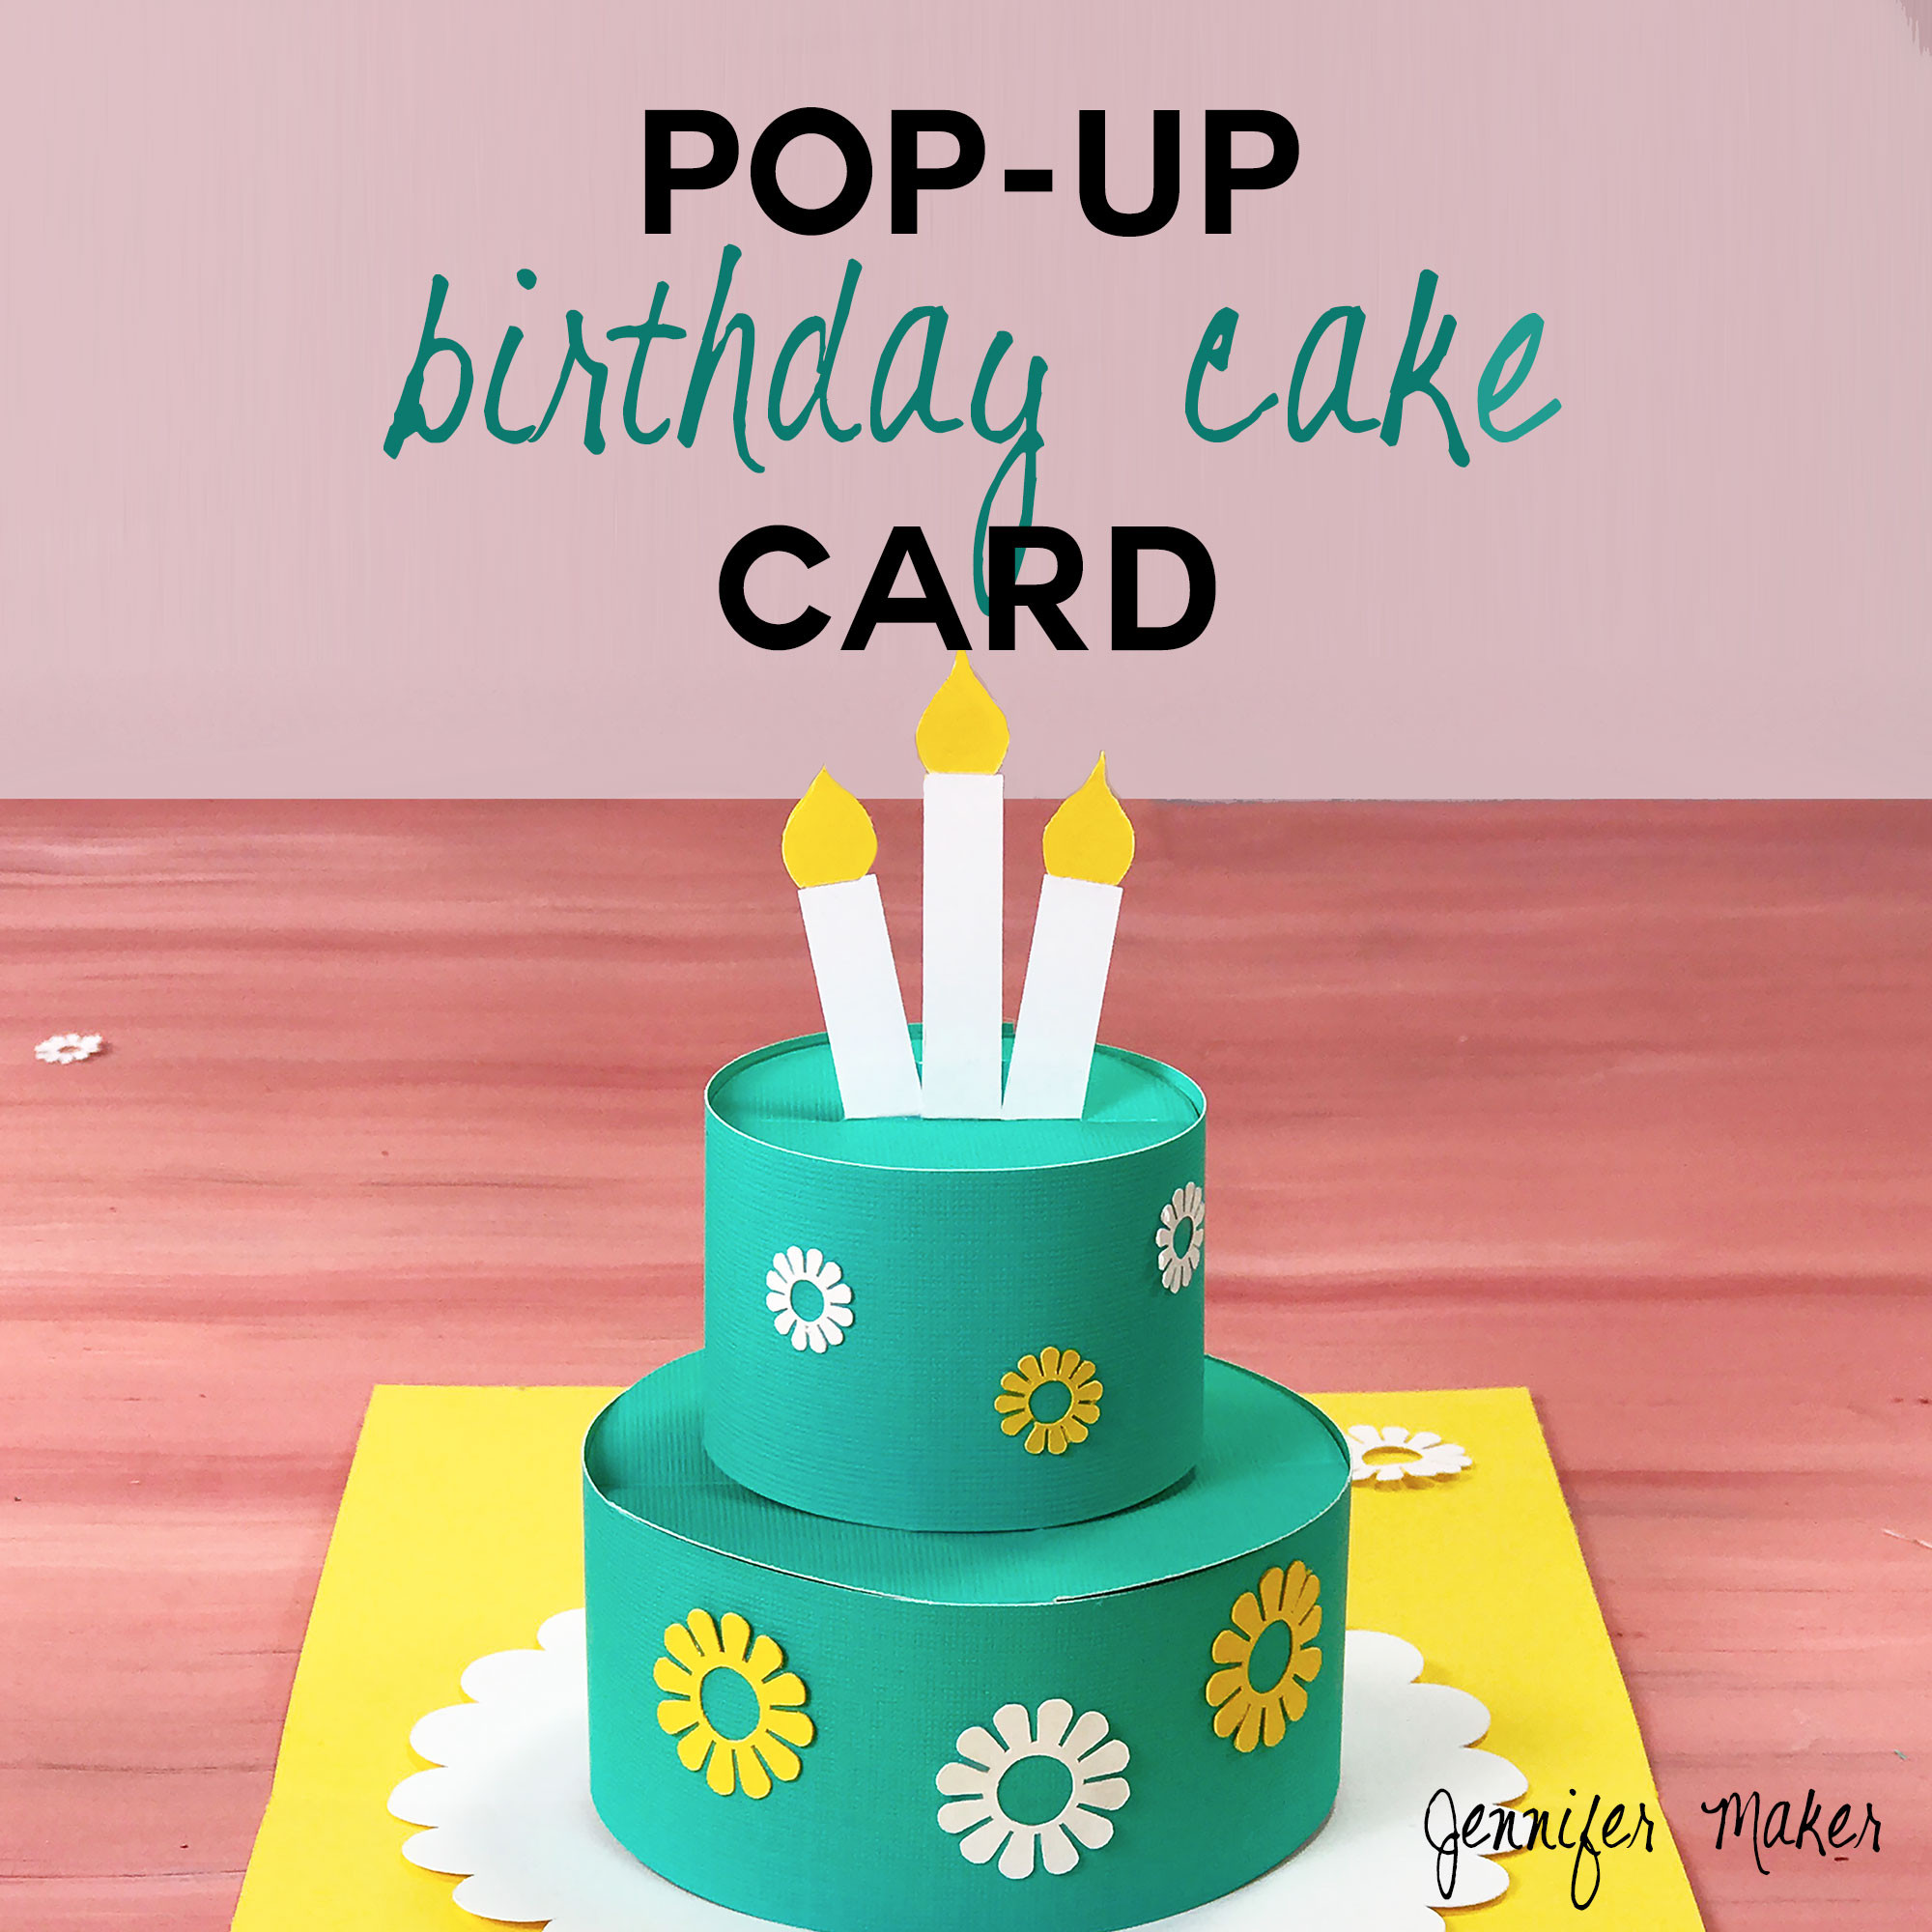 Birthday Cake Cards  How to Make a Pop Up Birthday Cake Card Jennifer Maker